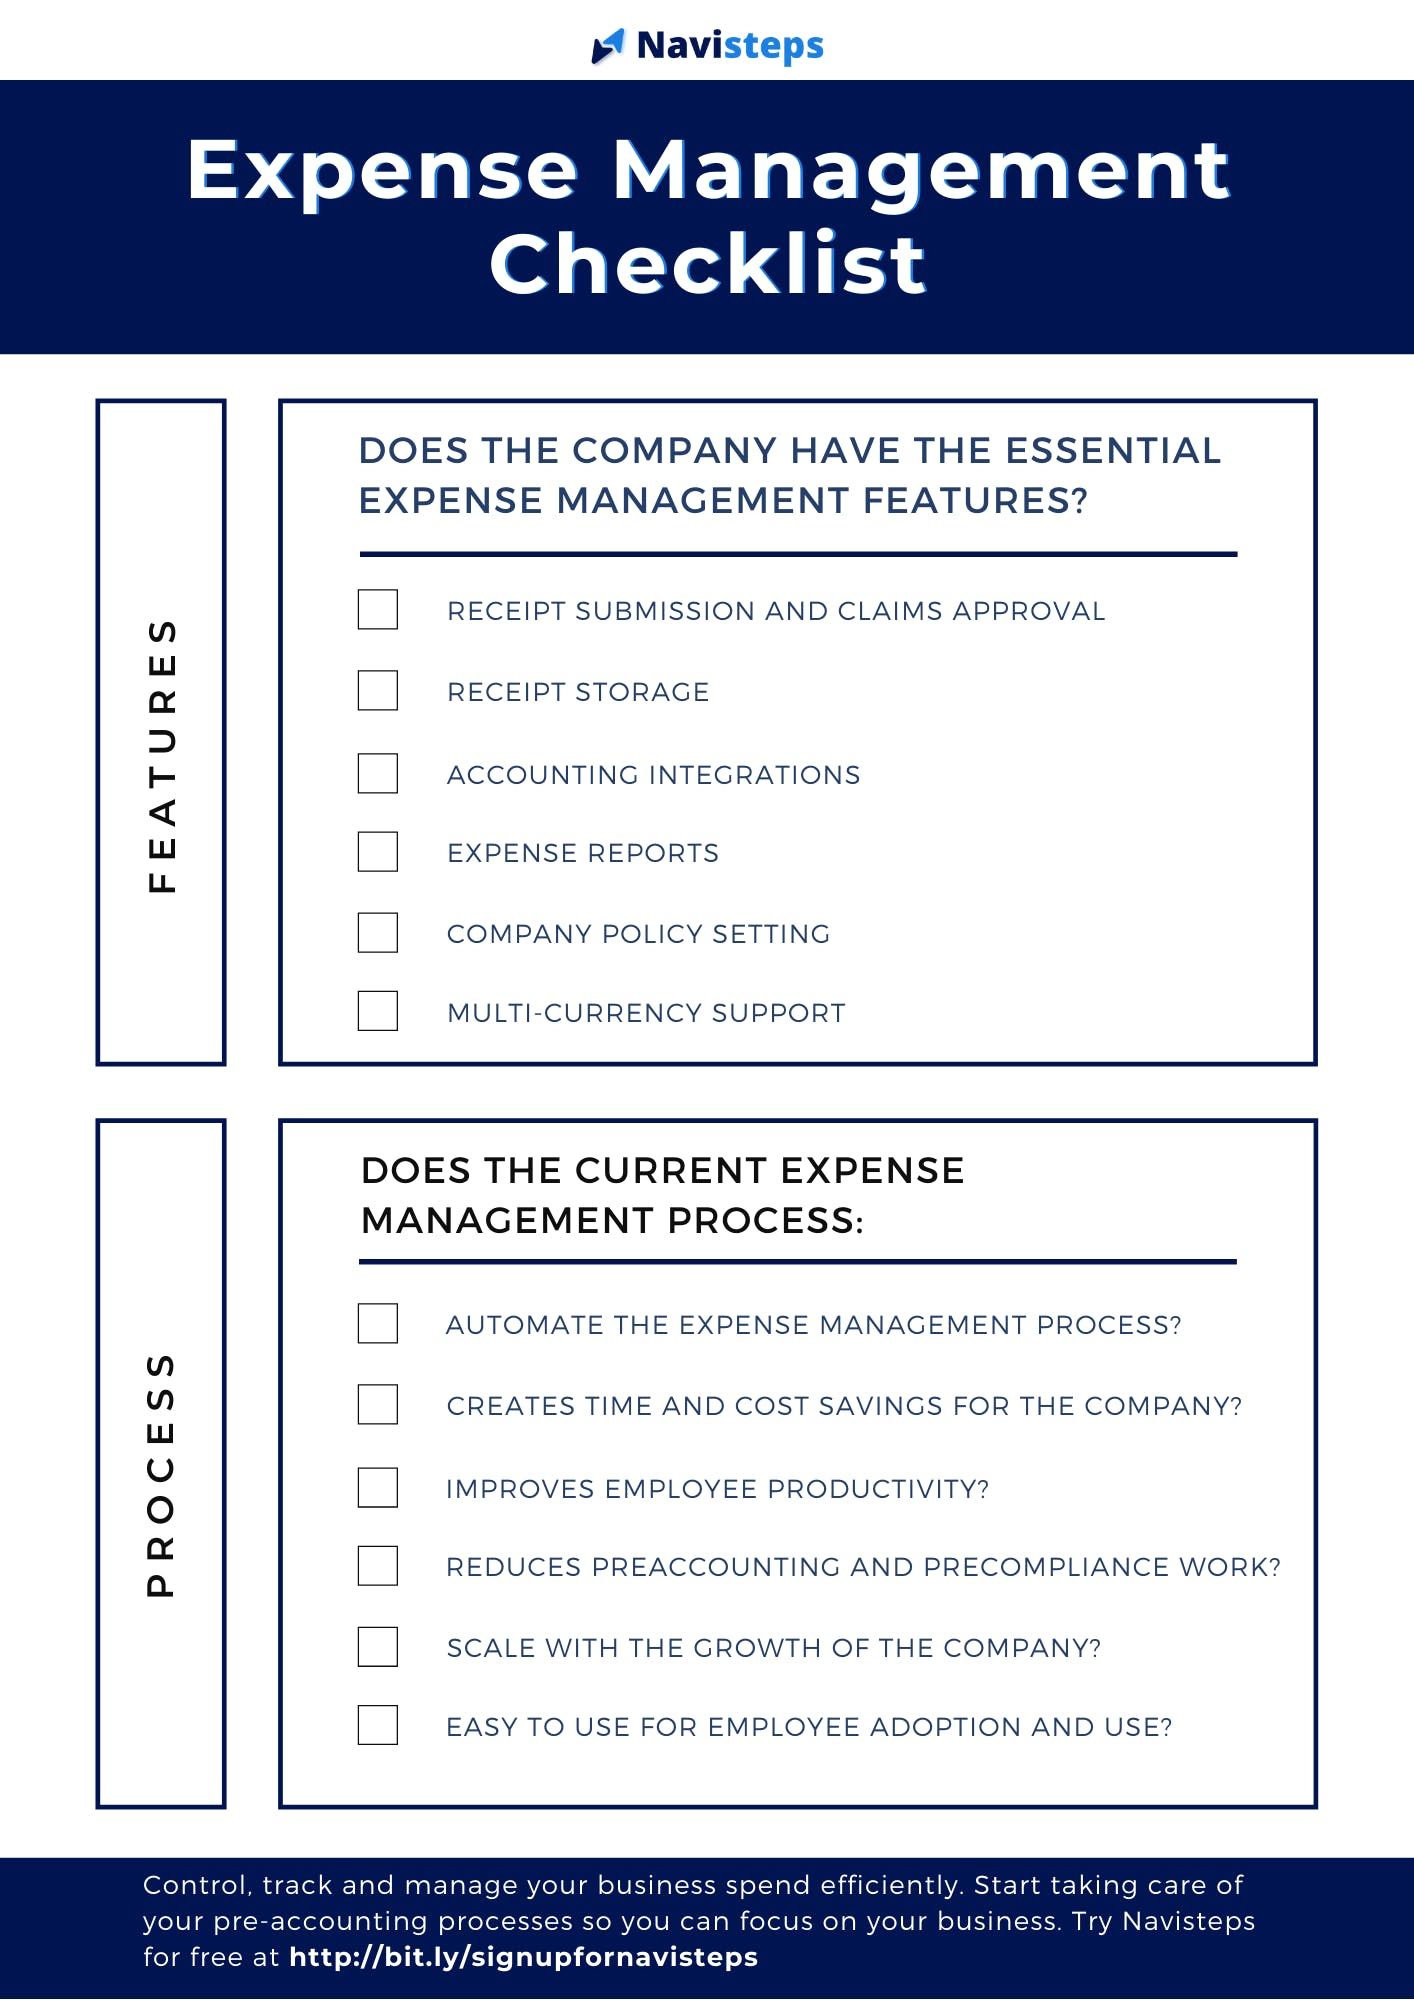 Expense Management Checklist for Businesses